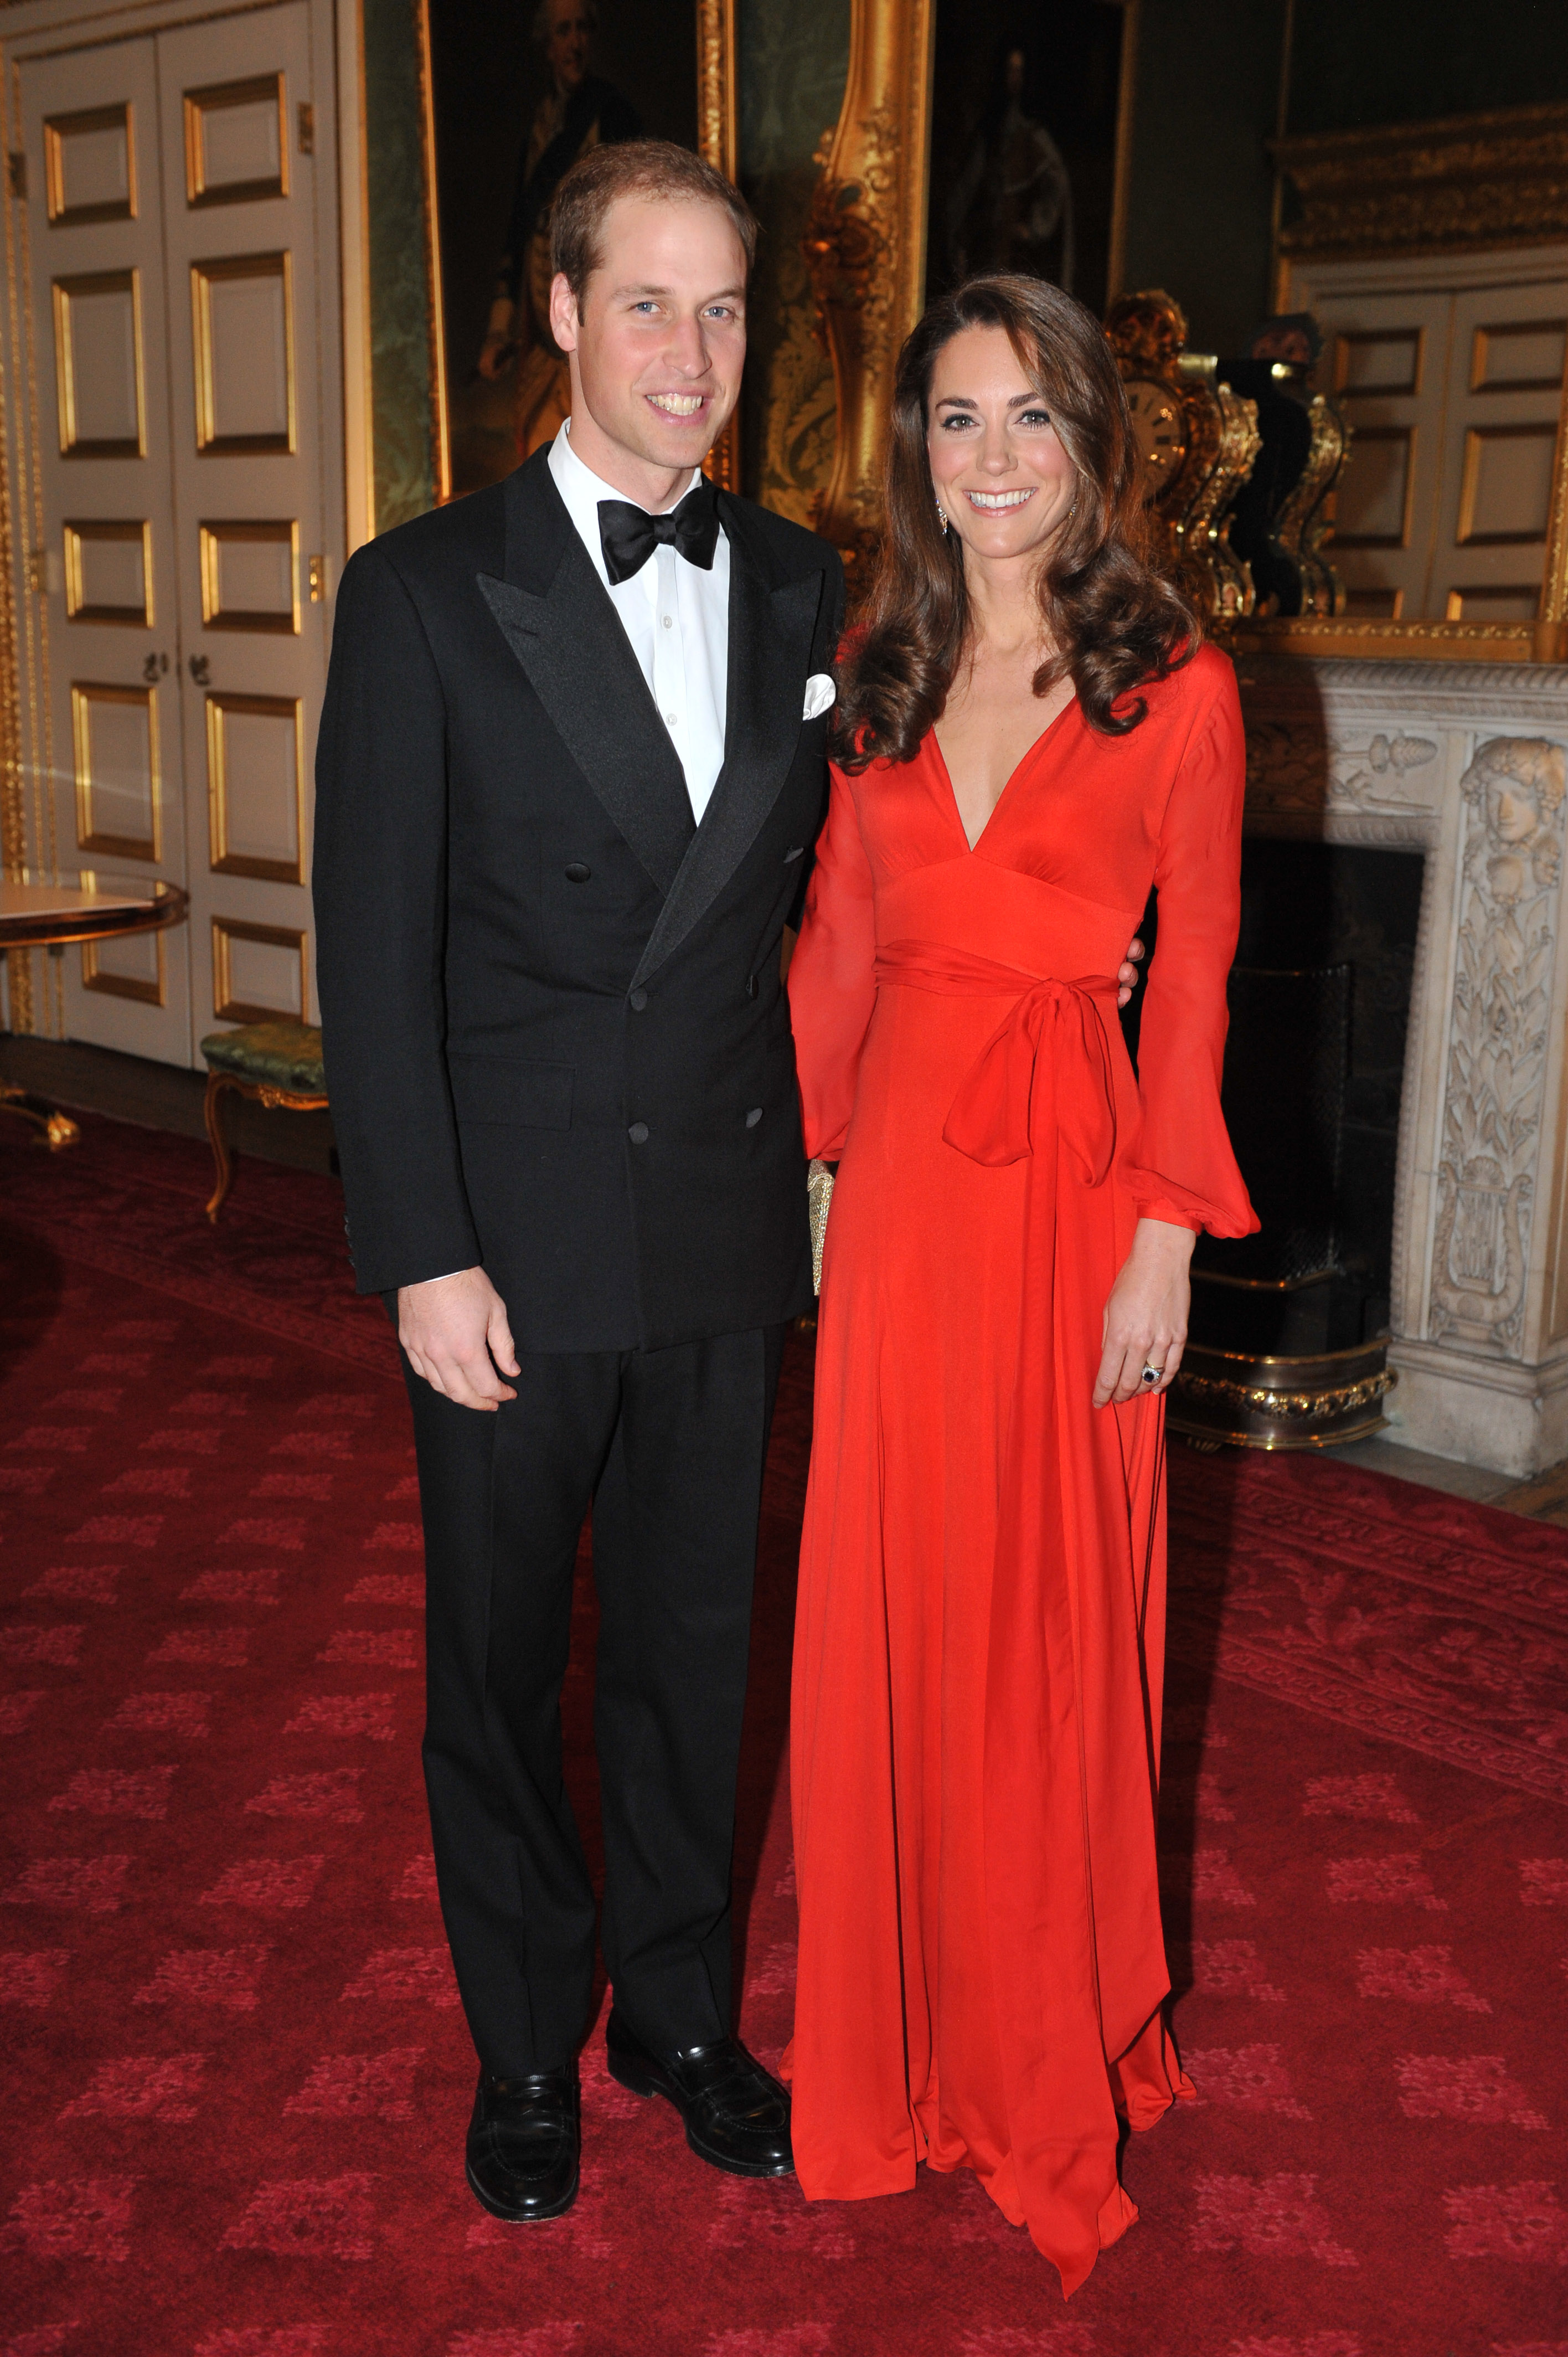 <strong>Royal Red</strong>                                   The Duchess attended a gala for the Child Bereavement Charity in London on Oct. 13, 2011, wearing a crimson Beulah London gown. The dress wraps at the waist, which has become a hallmark of Middleton's most-talked-about outfits, including the blue Issa dress she wore to announce her engagement.